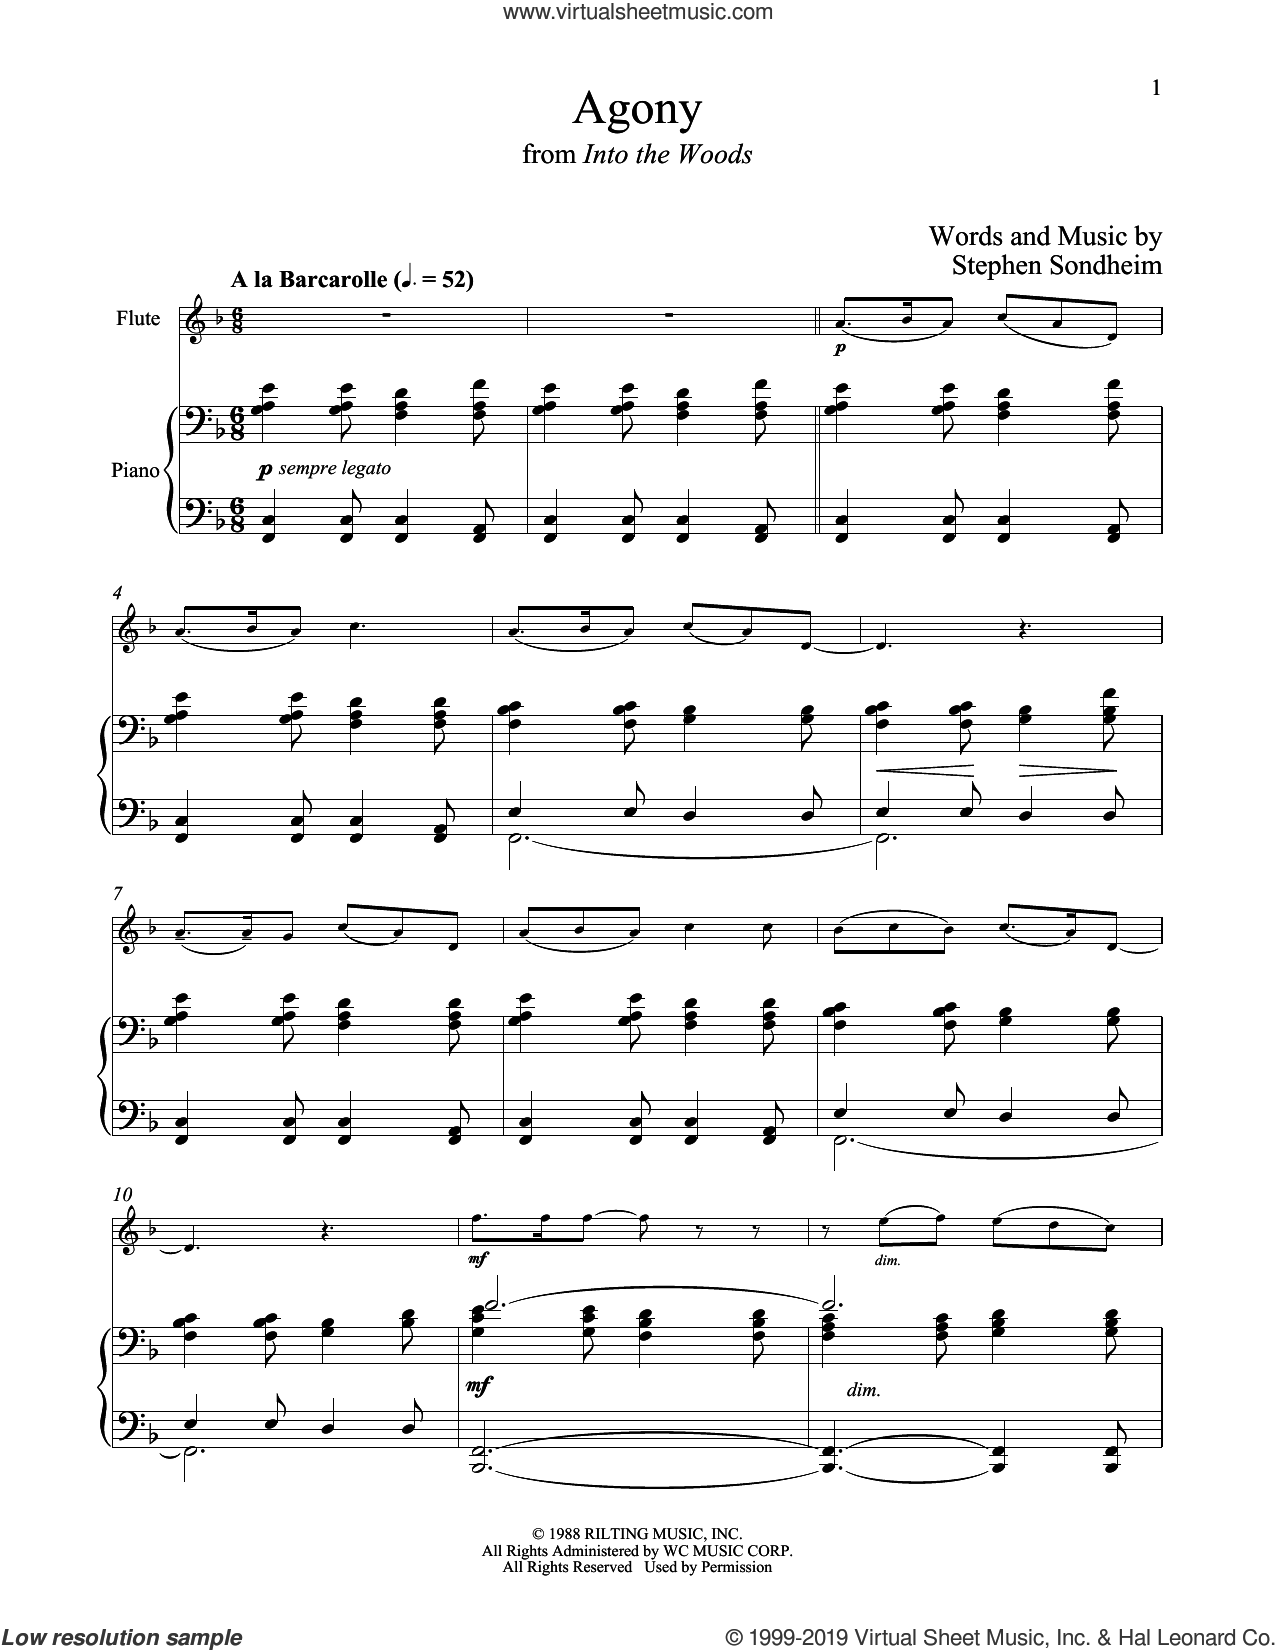 Agony (from Into The Woods) sheet music for flute and piano by Stephen Sondheim, intermediate skill level